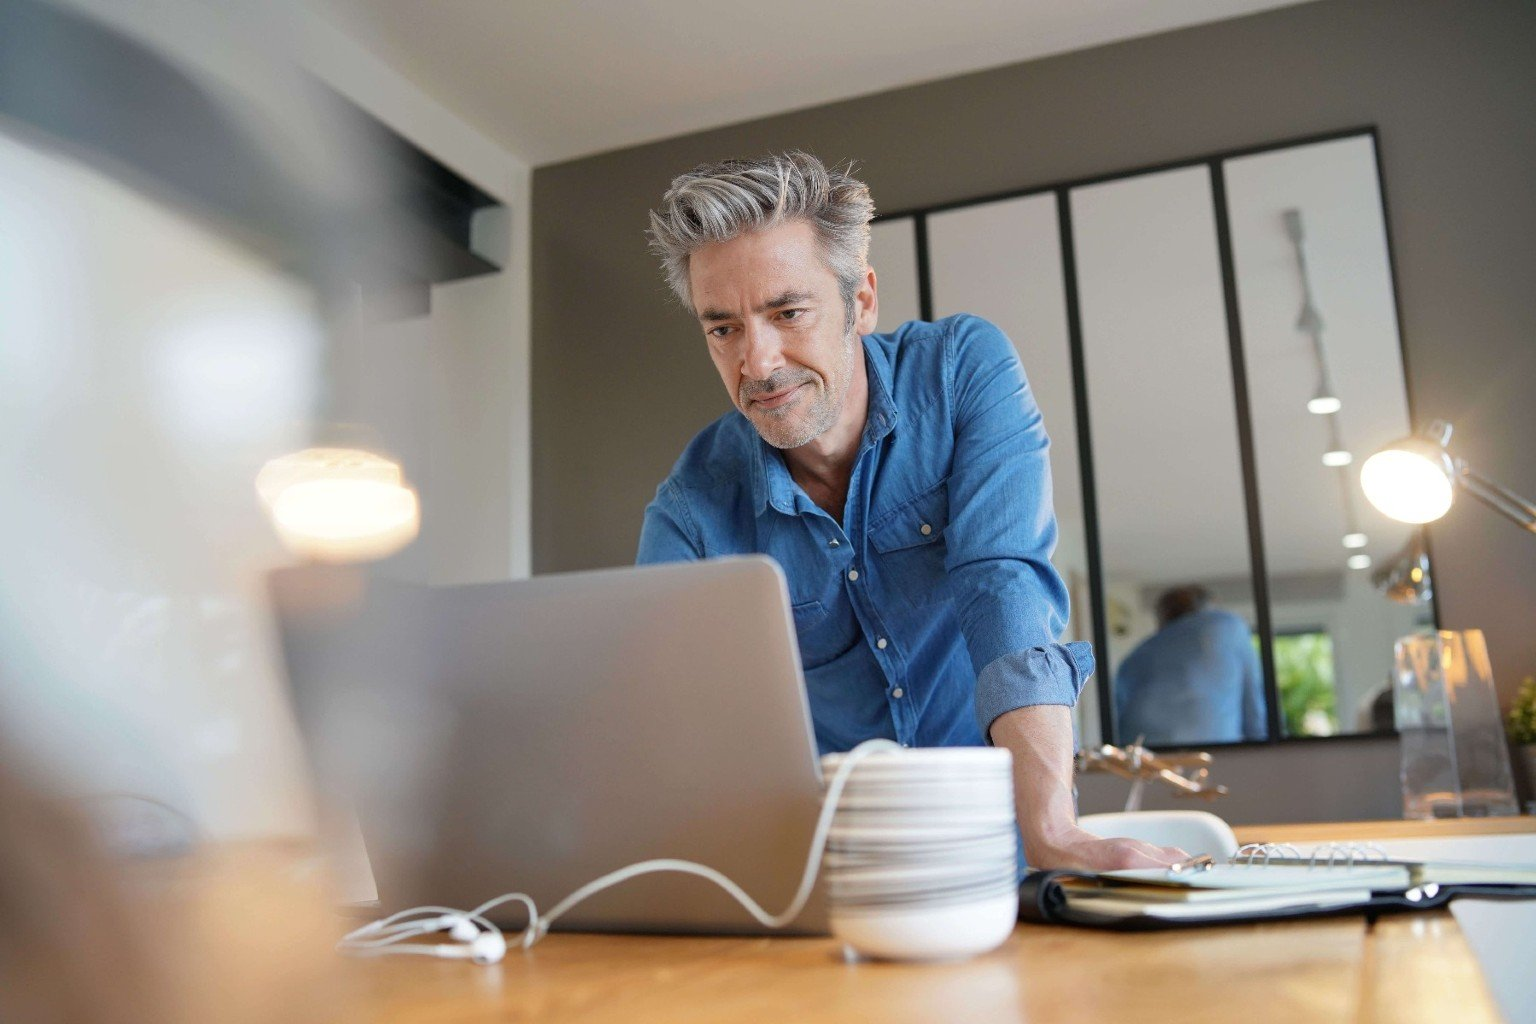 Work with Clients Remotely eBook